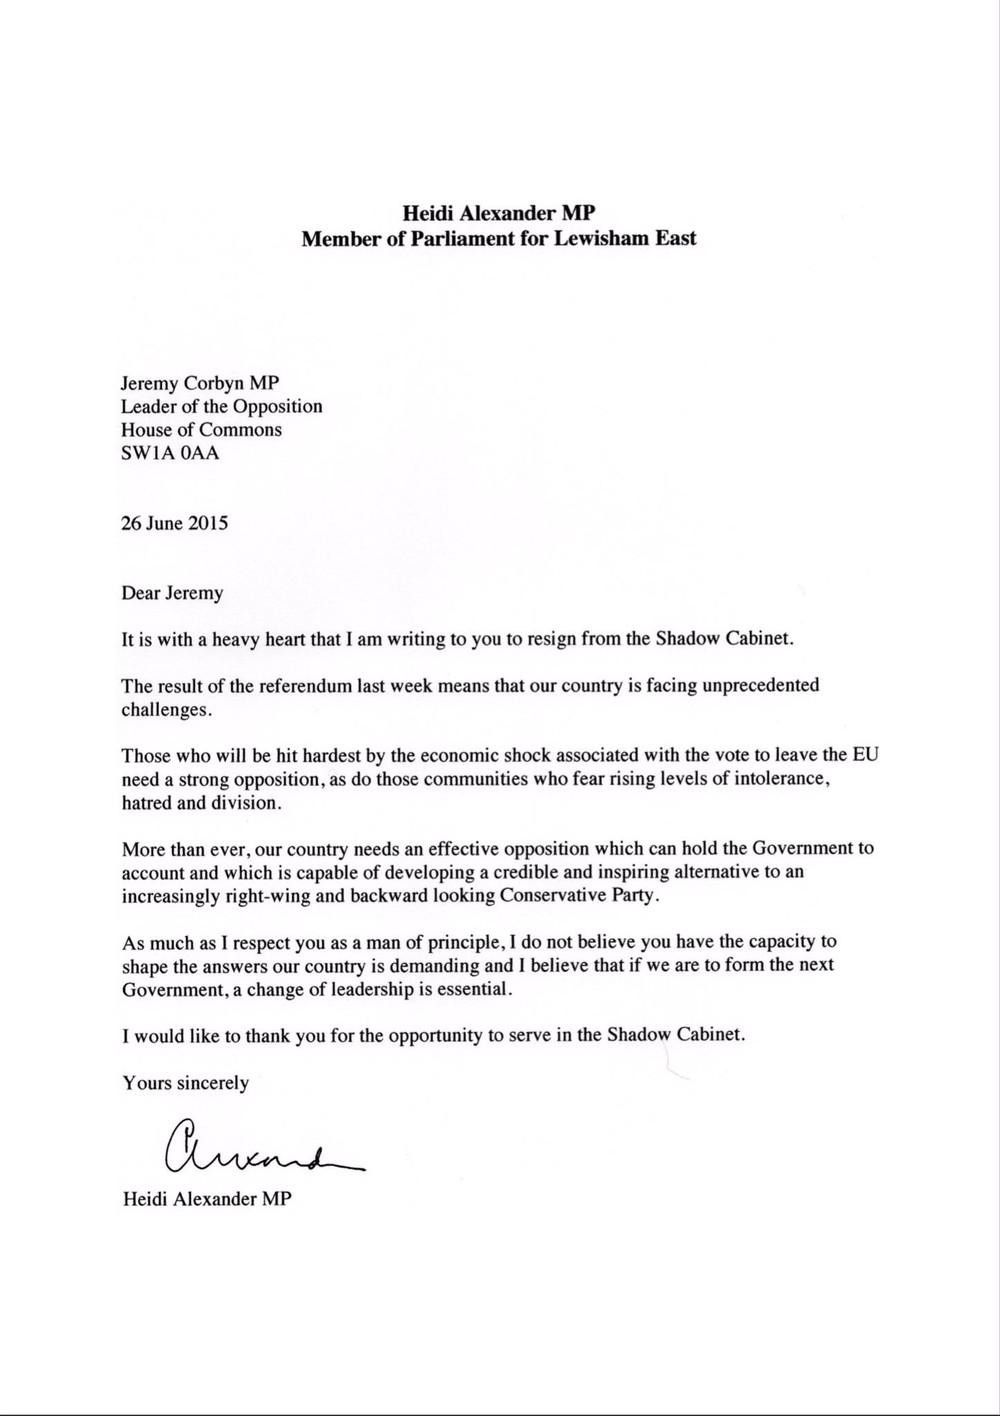 resignation letter template belgium  Labour MP Shadow Cabinet Resignation Letters: Ranked! - VICE - resignation letter template belgium